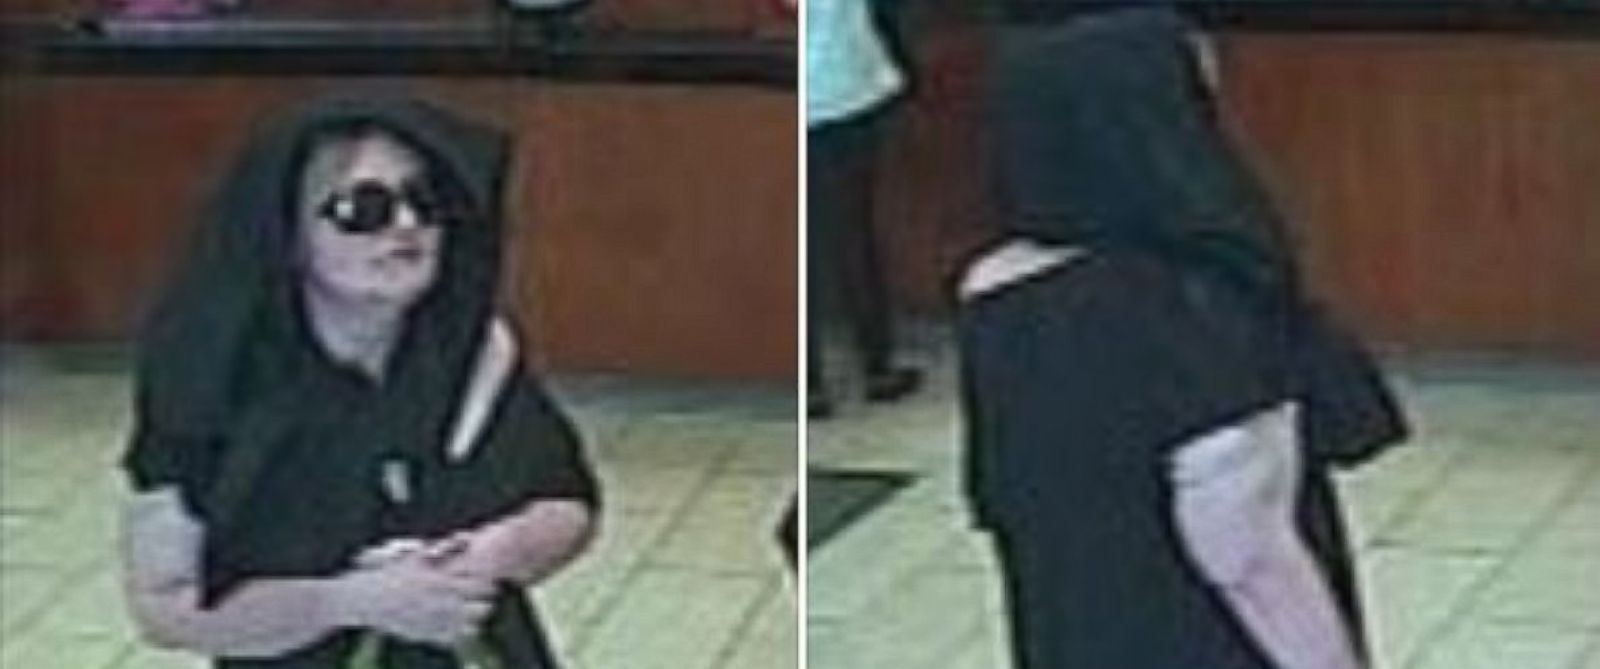 New Jersey Police Hunting For Woman Who Robbed 3 Banks In 24hrs